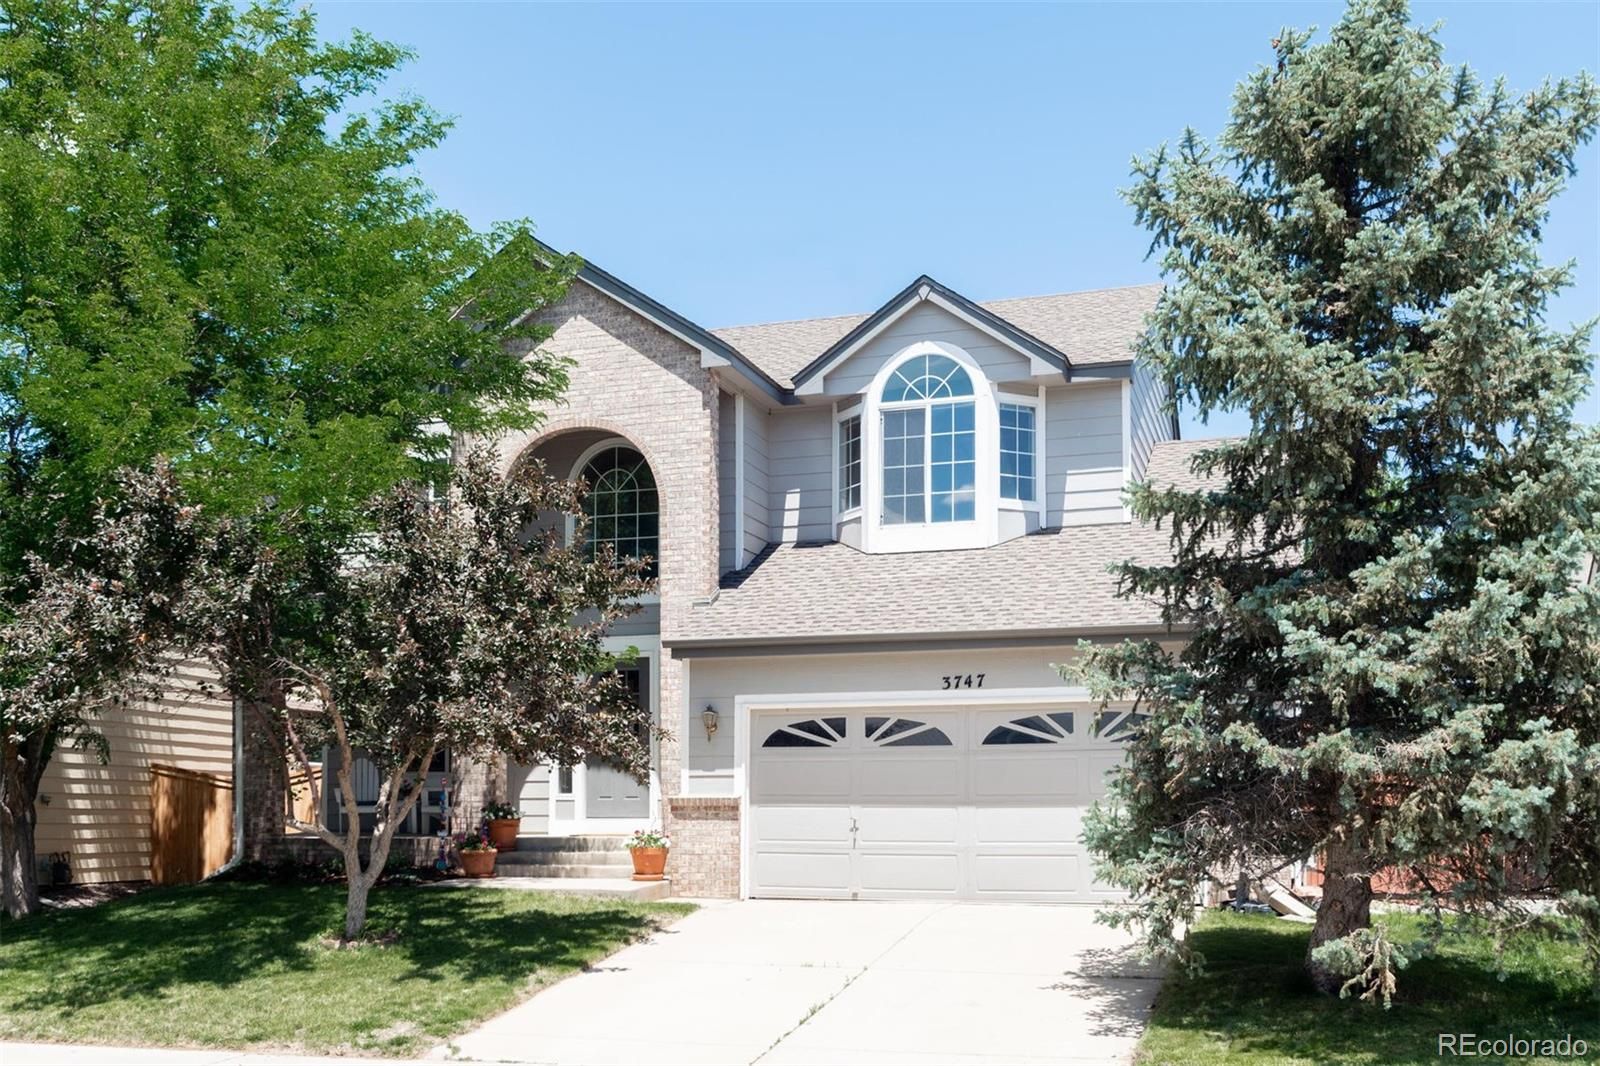 3747 Seramonte Drive Property Photo - Highlands Ranch, CO real estate listing